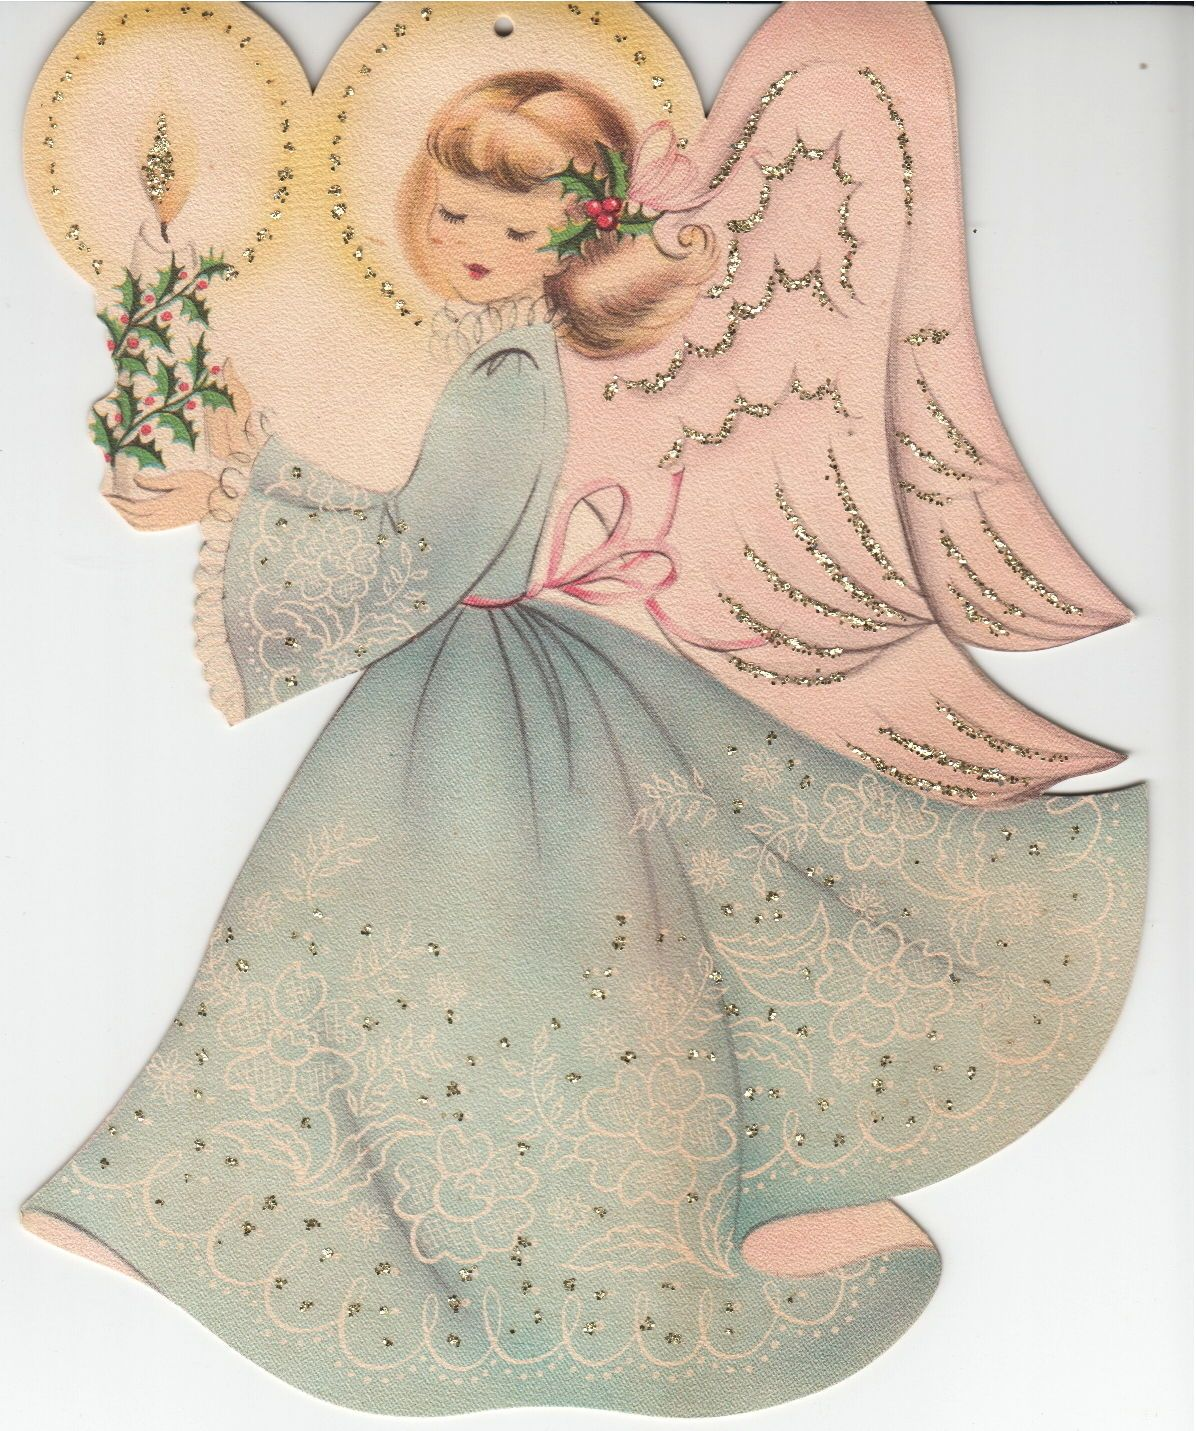 "Vintage ANGEL Greeting Card NORCROSS Unused Lace Glitter 9.5"" tall 1940s FOR SALE • $24.99 • See Photos! Money Back Guarantee. Vintage ANGEL Greeting Card from the NORCROSS Collection Unused Lace print Glitter 9.5"" tall 1940s Age-toning to the paper, No envelope. Item(s) come from a smoke-free house. Winner to pay 222525635081"